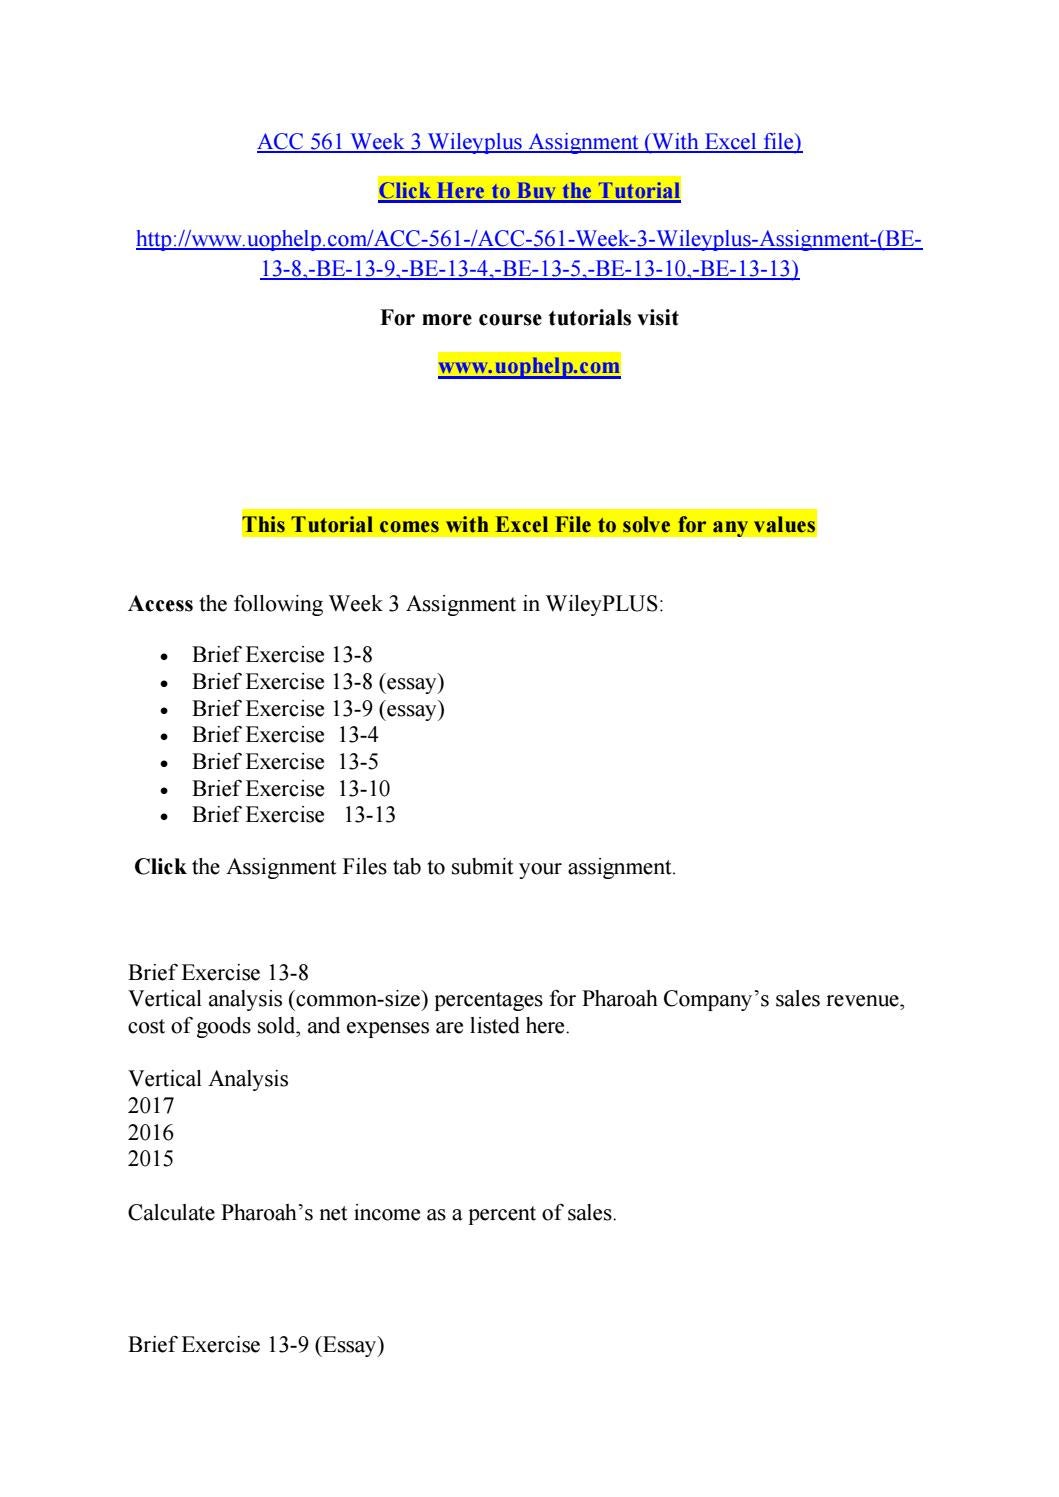 acc week wileyplus assignment excel file by acc 561 week 3 wileyplus assignment excel file by jabbaree20 issuu